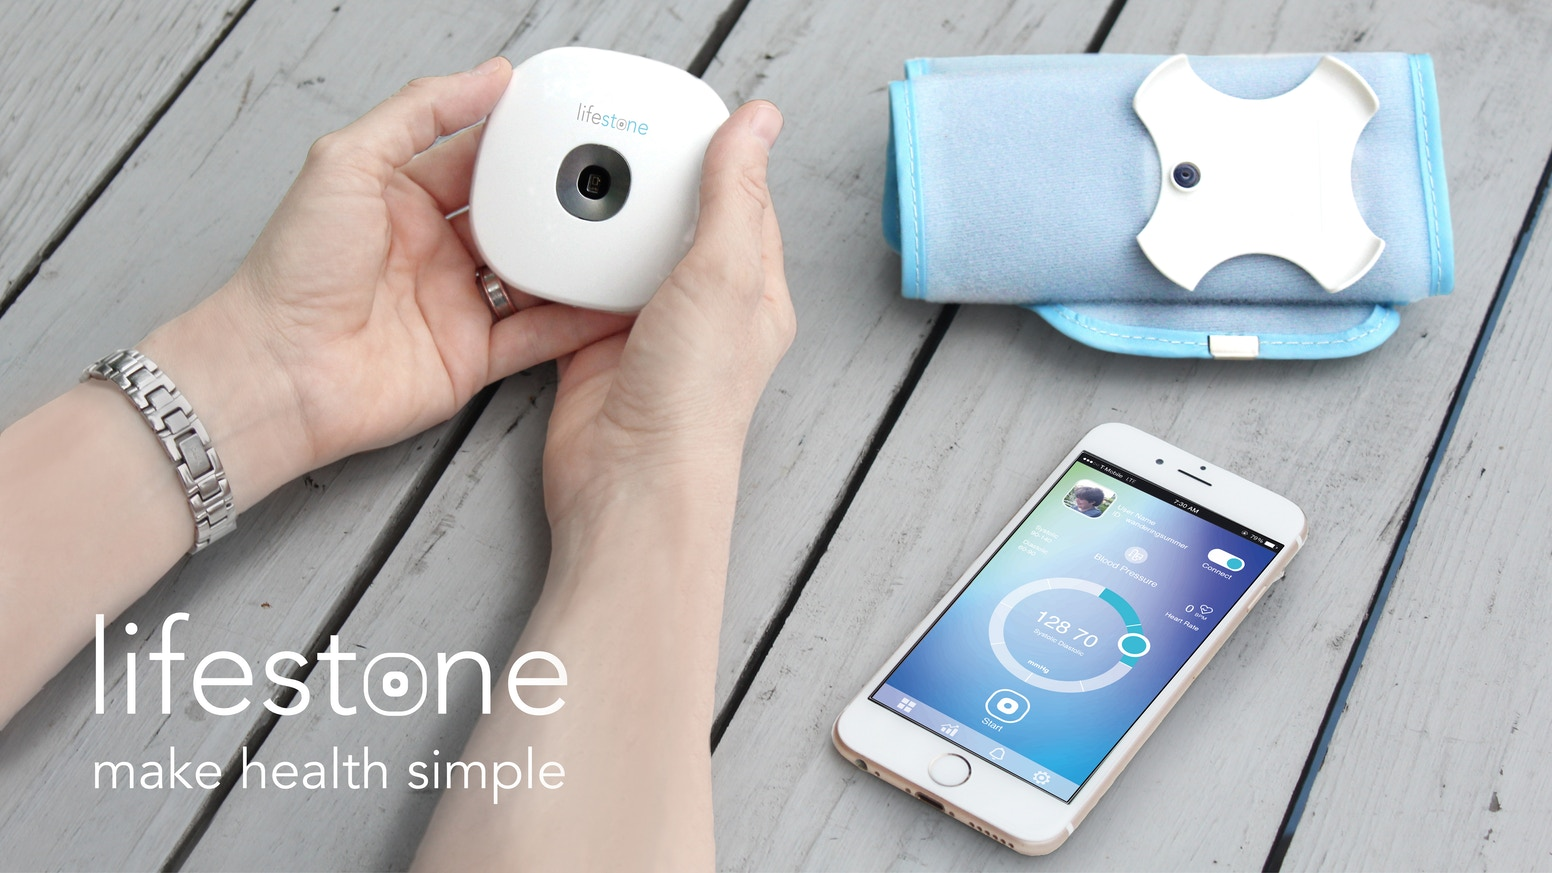 Please contact us by this email: support@miotio.com. Tracking and managing your health data has never been so simple. Lifestone - an elegant, powerful gadget that your family can rely on.